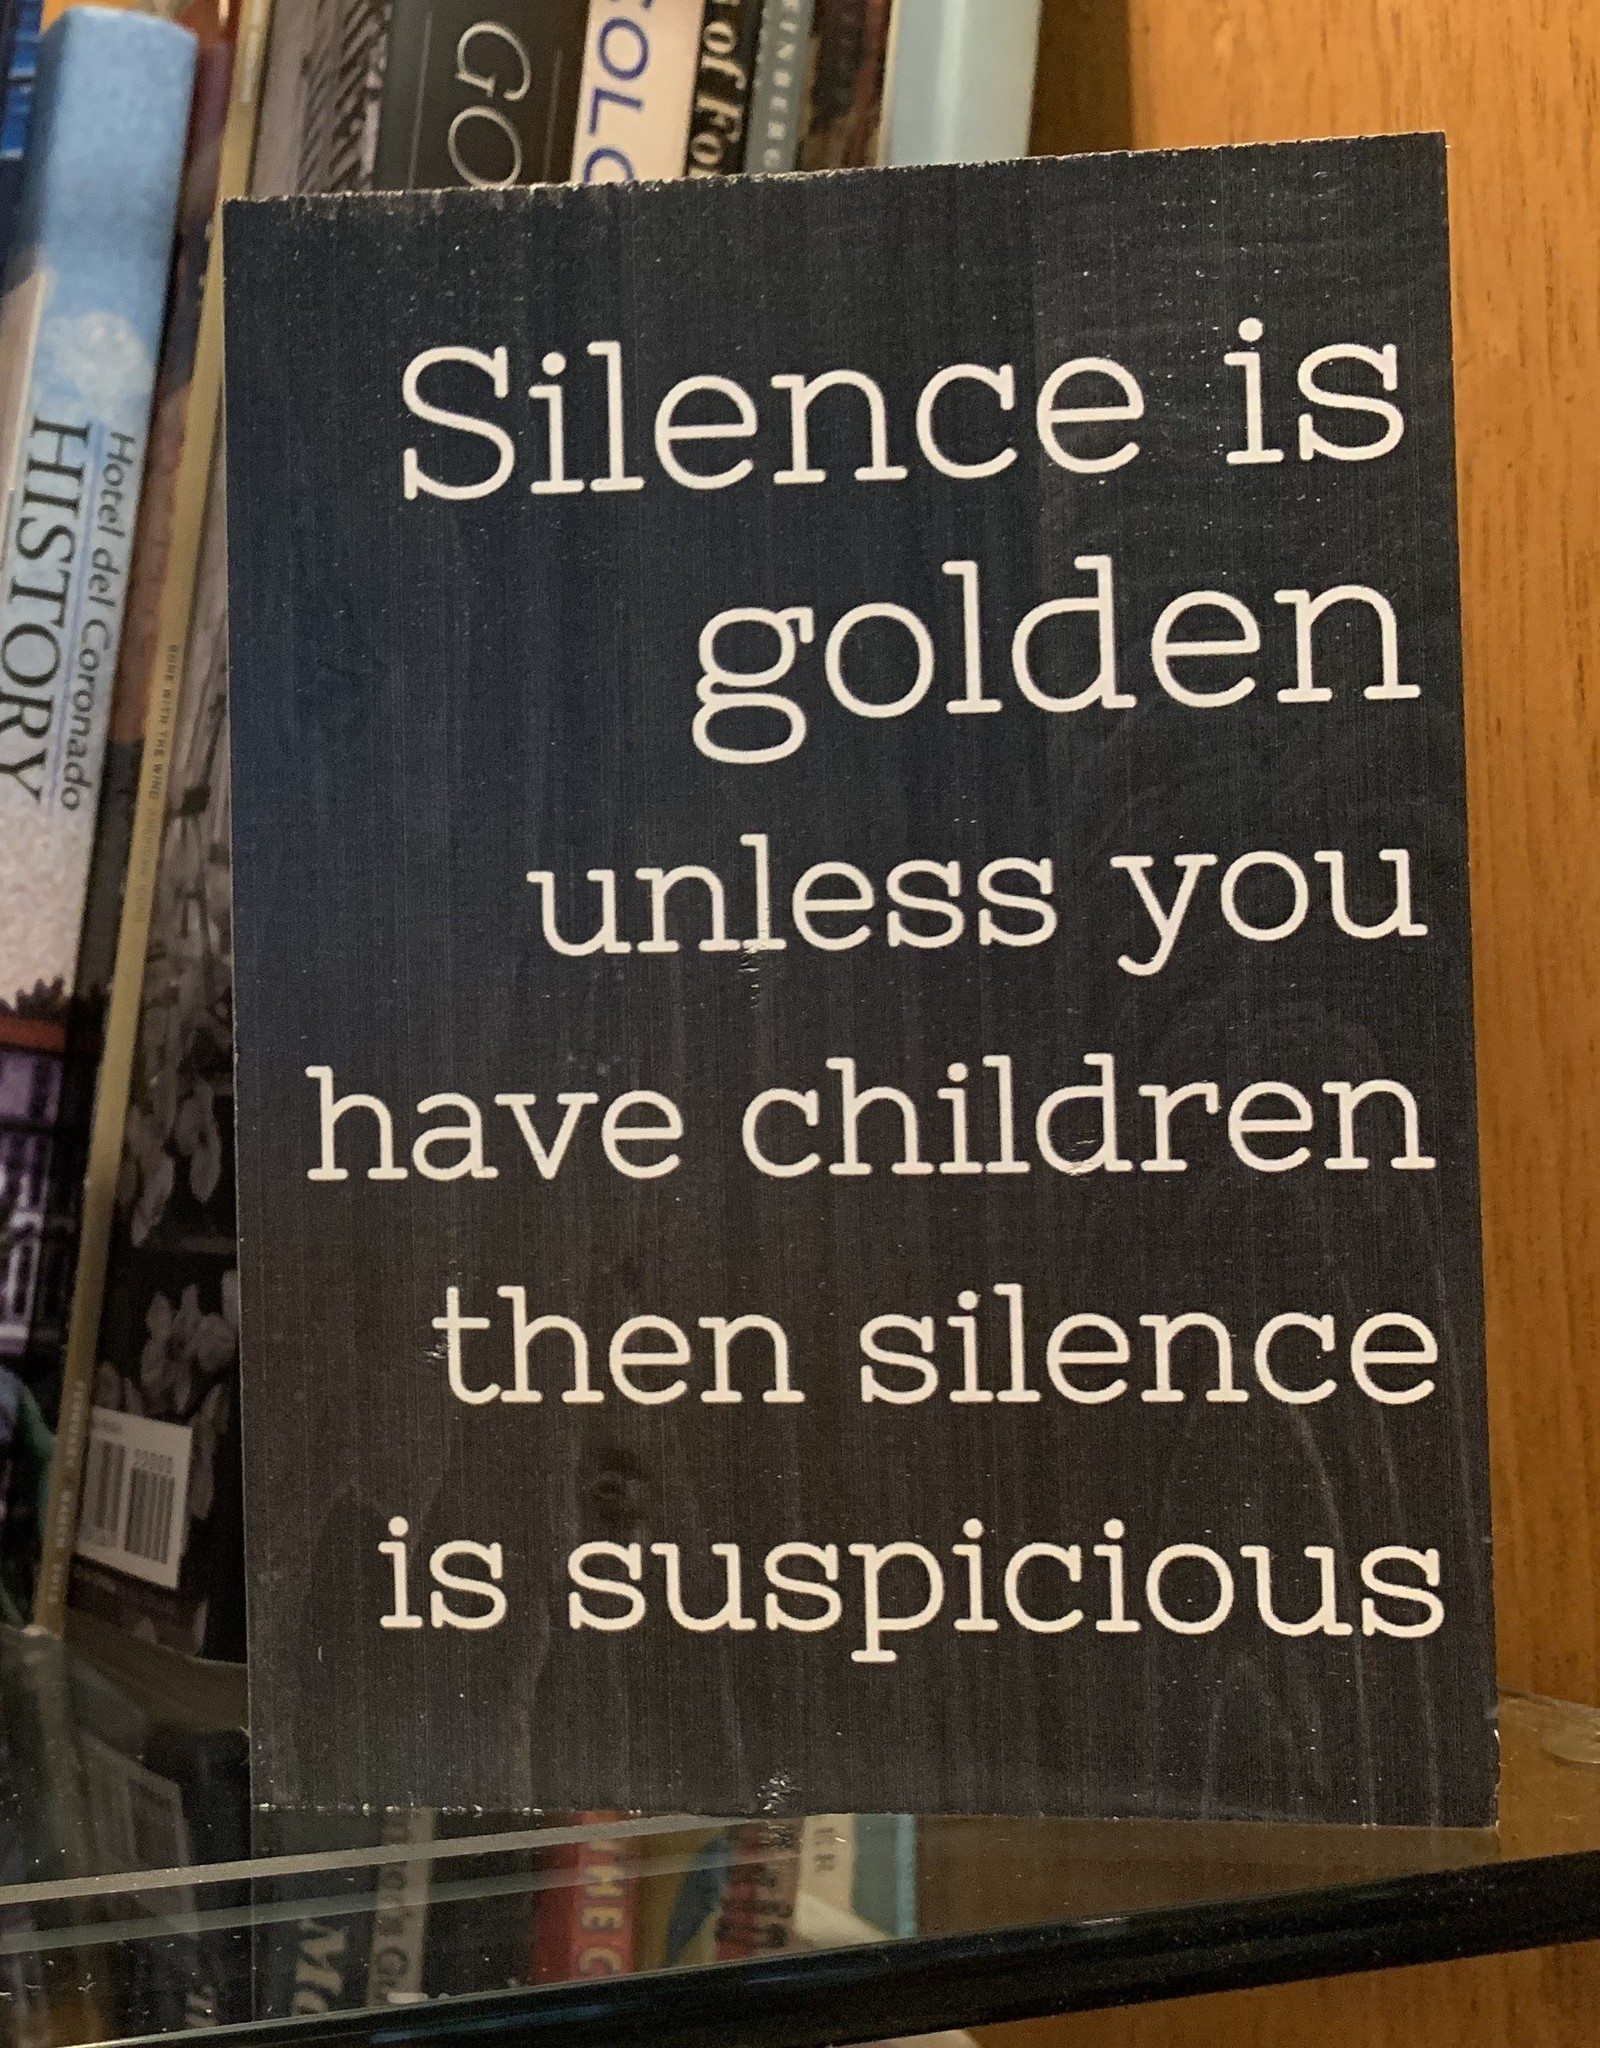 P graham dunn Silence is golden unless you have children then silence is suspicious